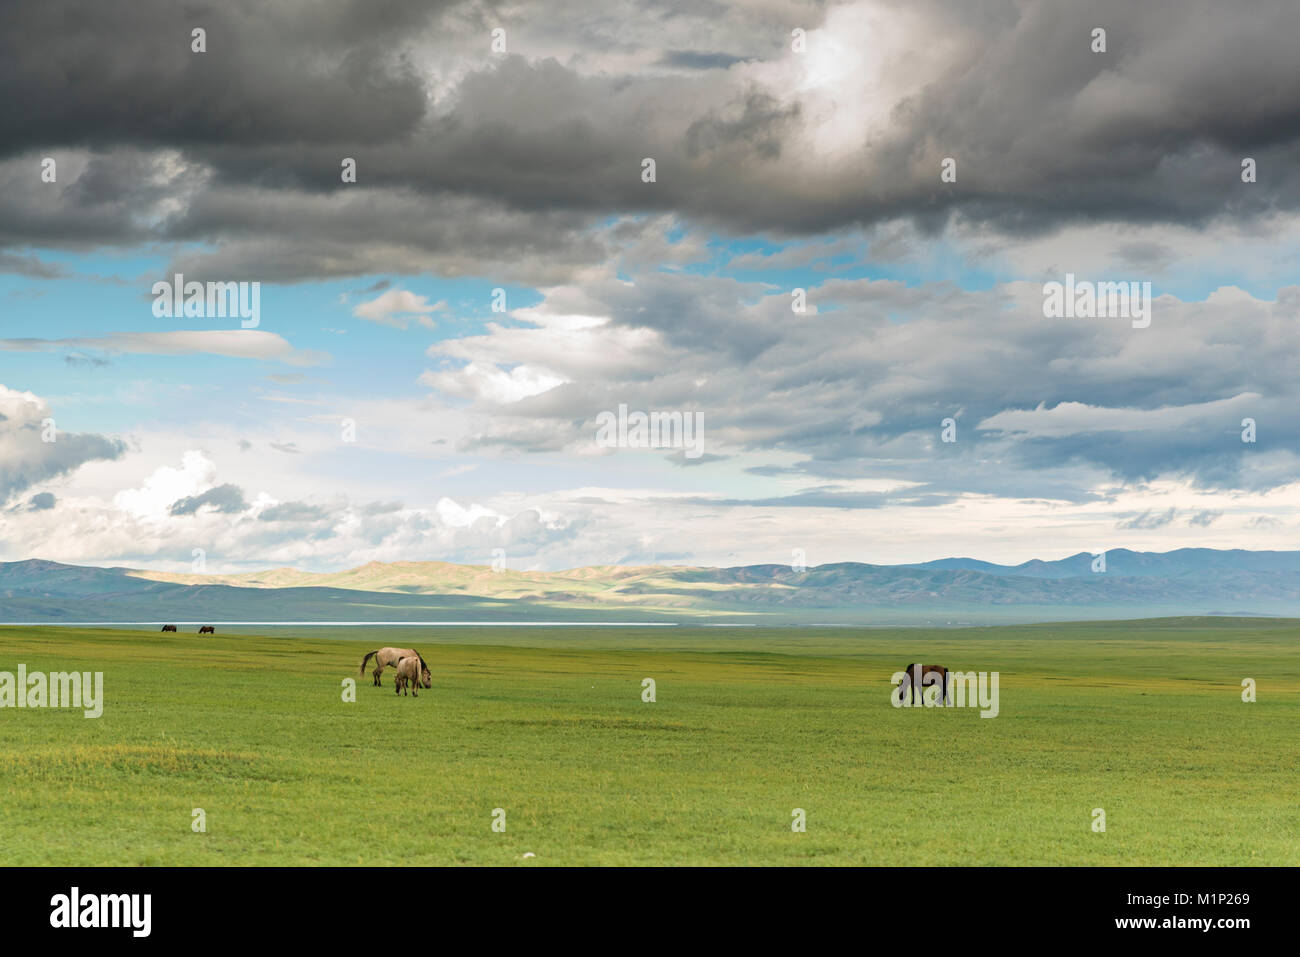 Horses grazing on the Mongolian steppe under a cloudy sky, South Hangay, Mongolia, Central Asia, Asia - Stock Image